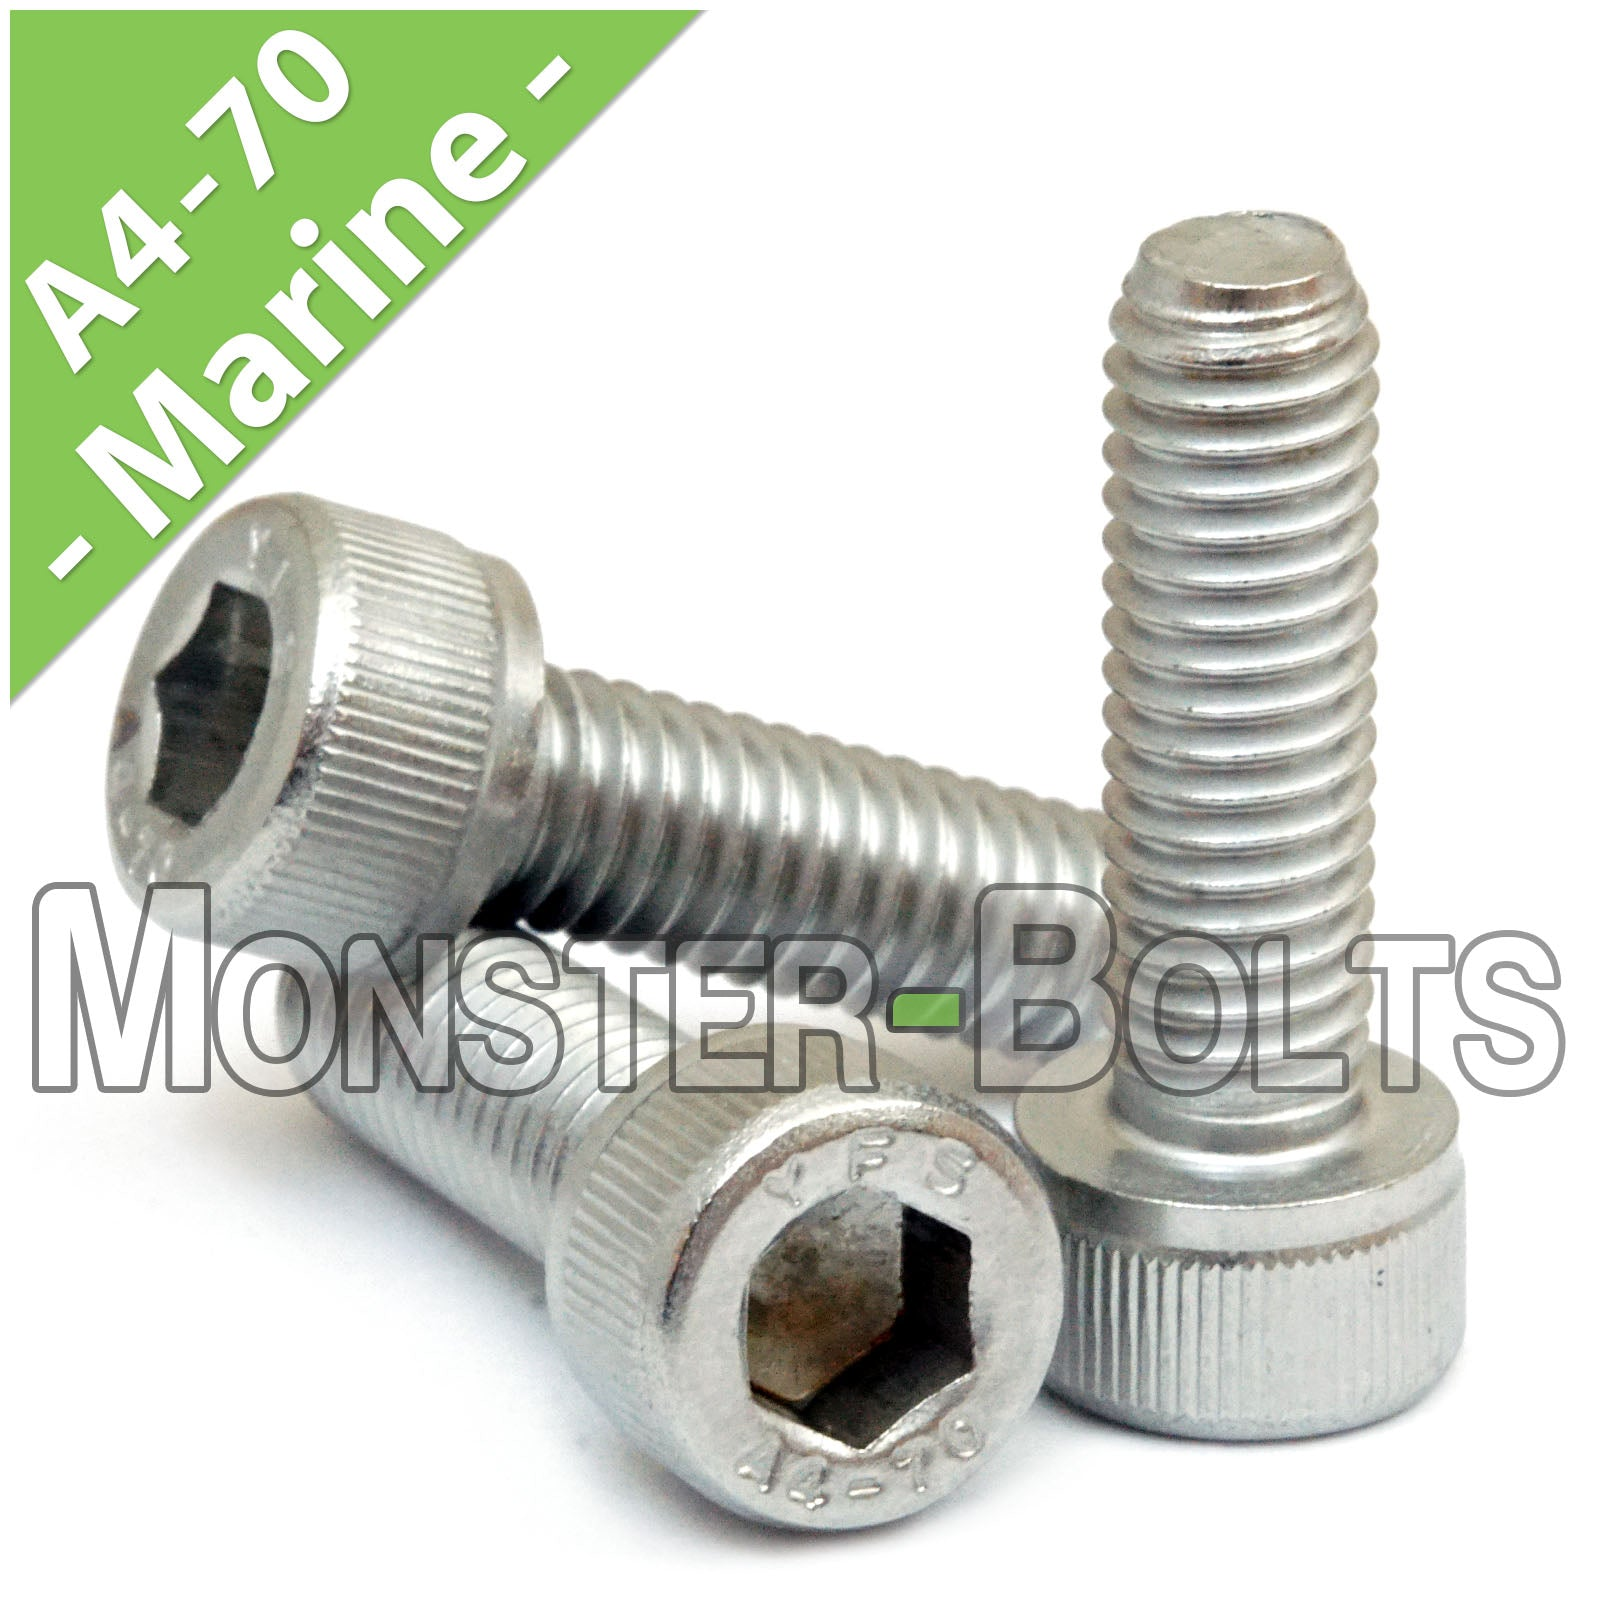 M4 8-70mm Long Marine Grade Stainless Steel Countersunk Self Tapping Screws